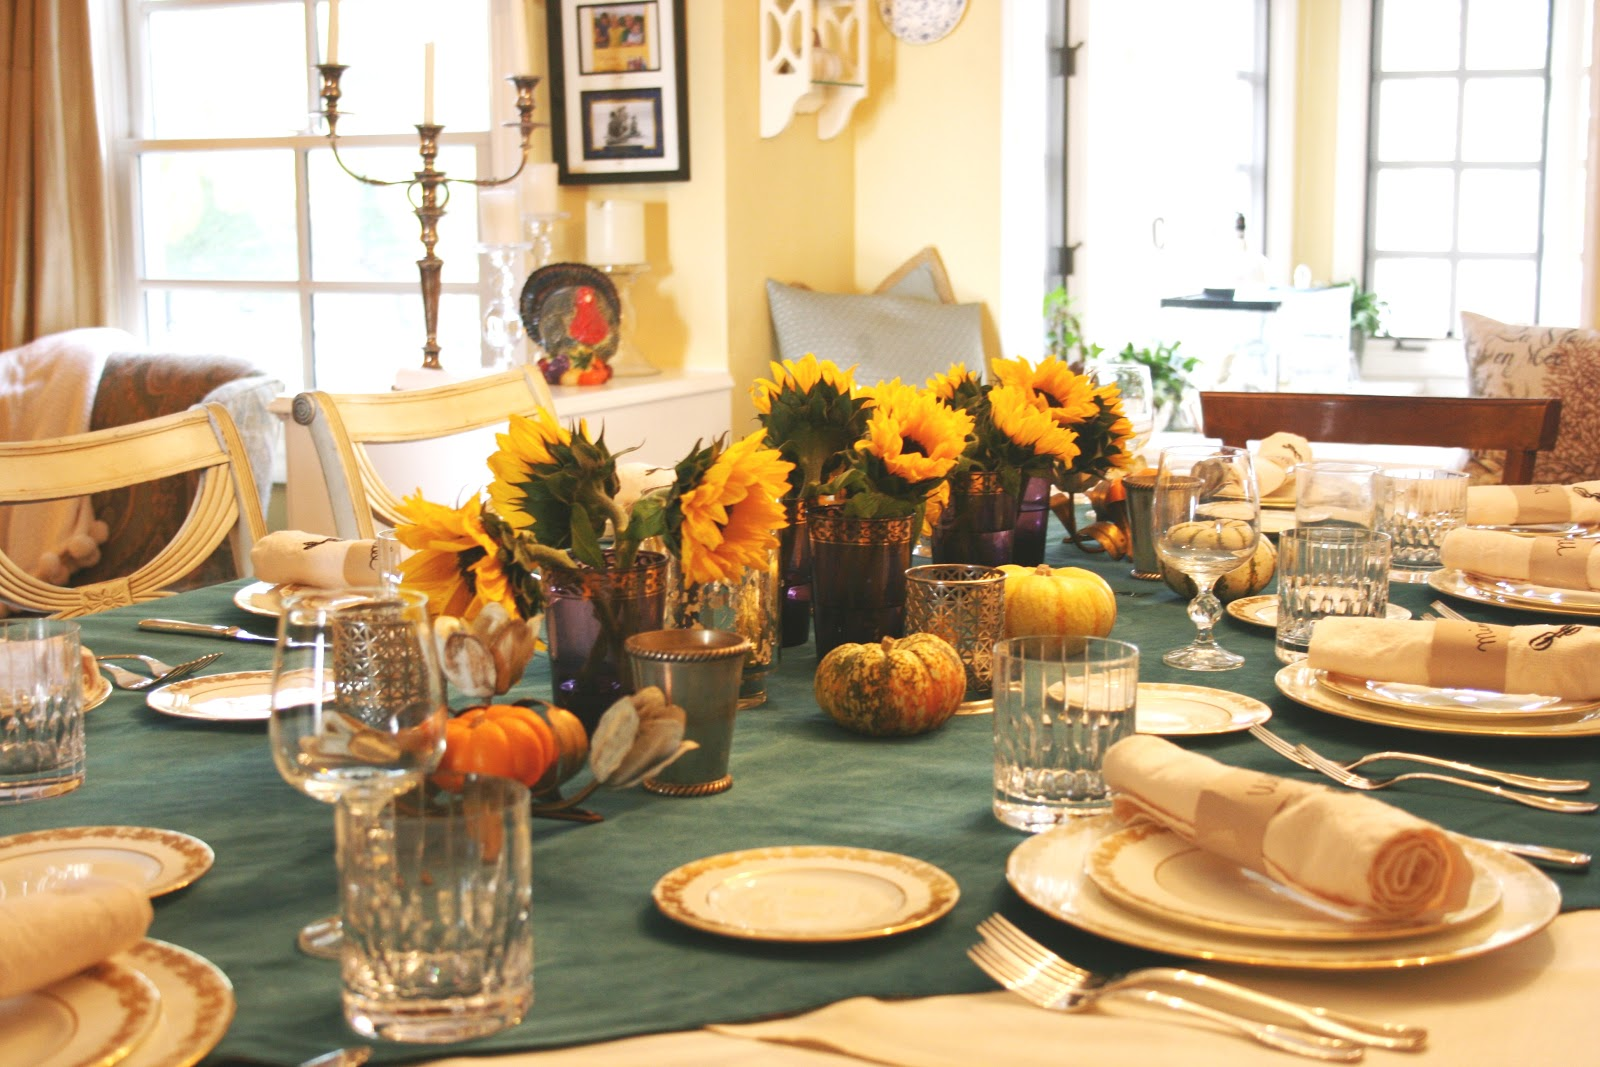 Thanksgiving table decoration ideas 9 interior design for Thanksgiving decorations ideas for office